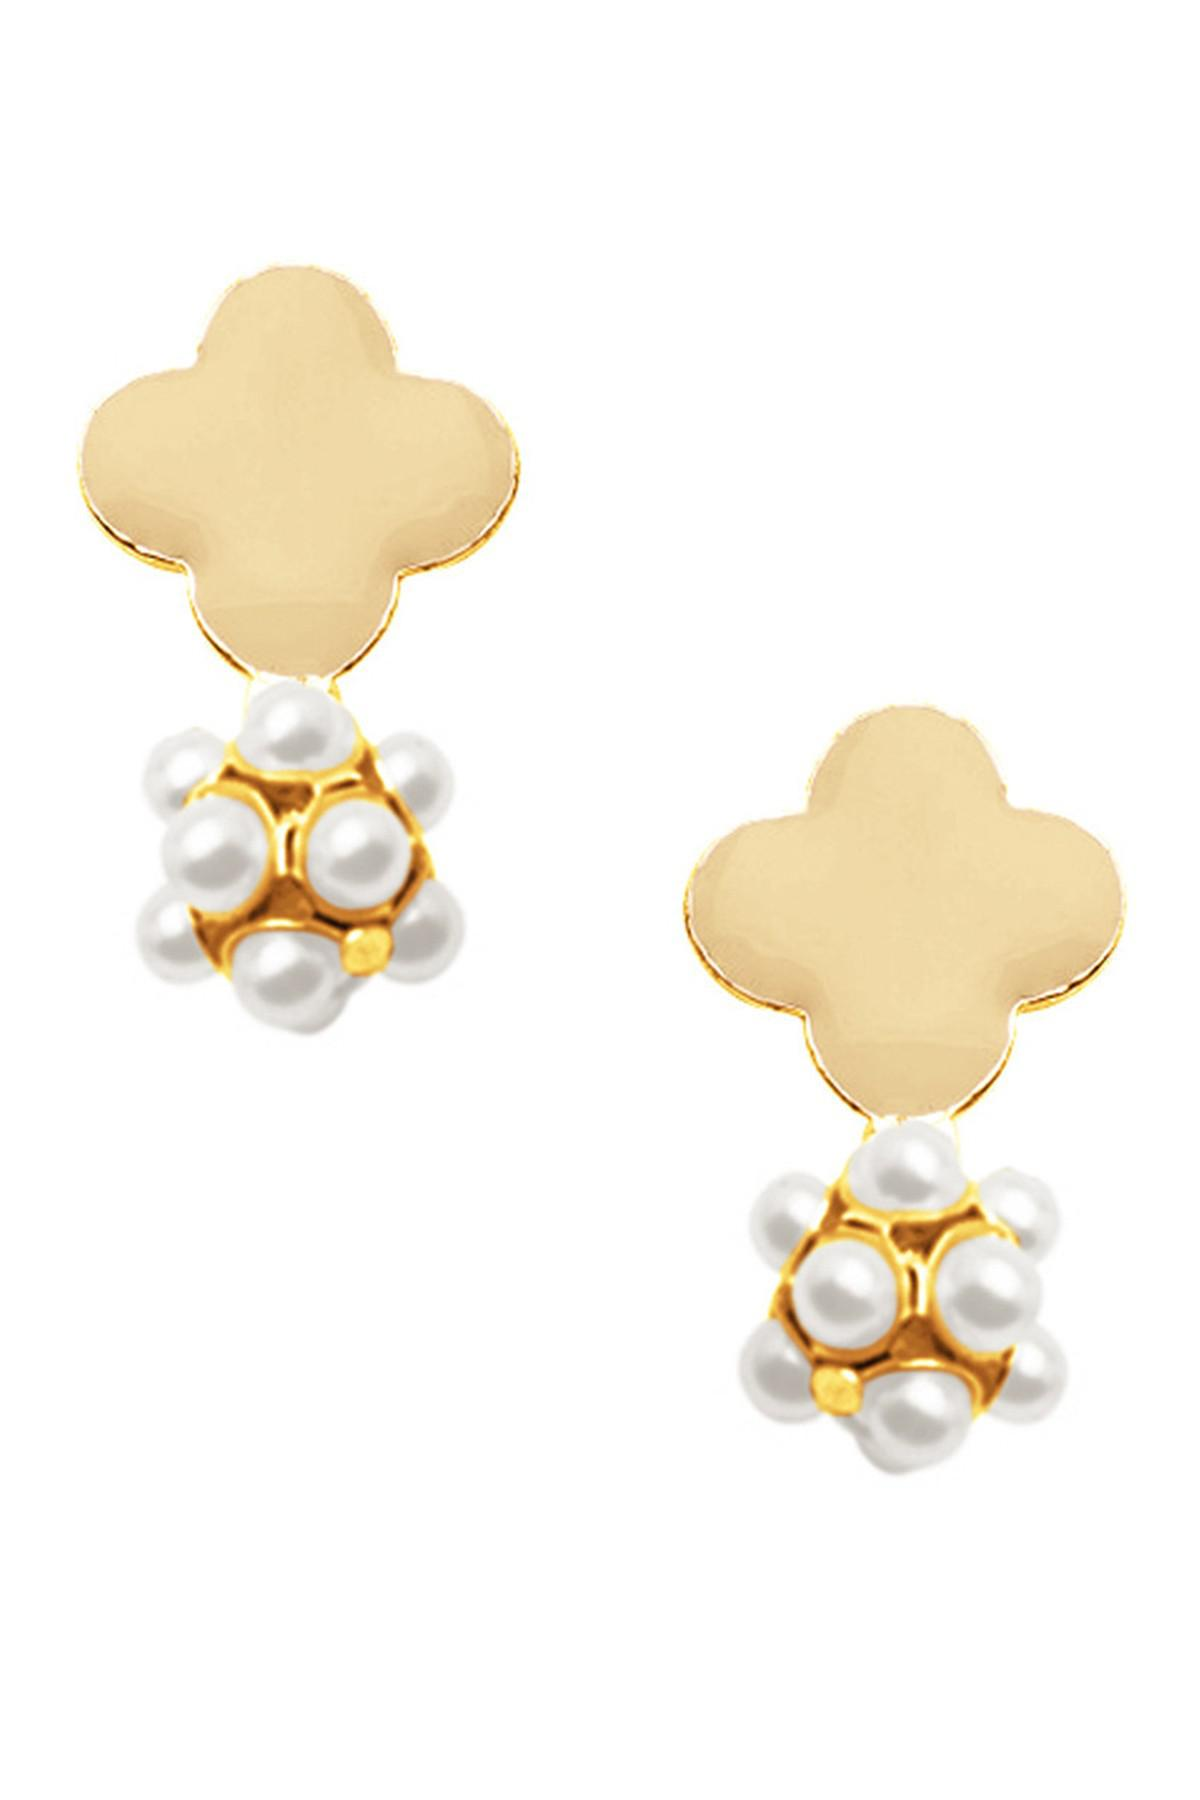 Discussion on this topic: Womens Karine Sultan Drop Earrings, womens-karine-sultan-drop-earrings/